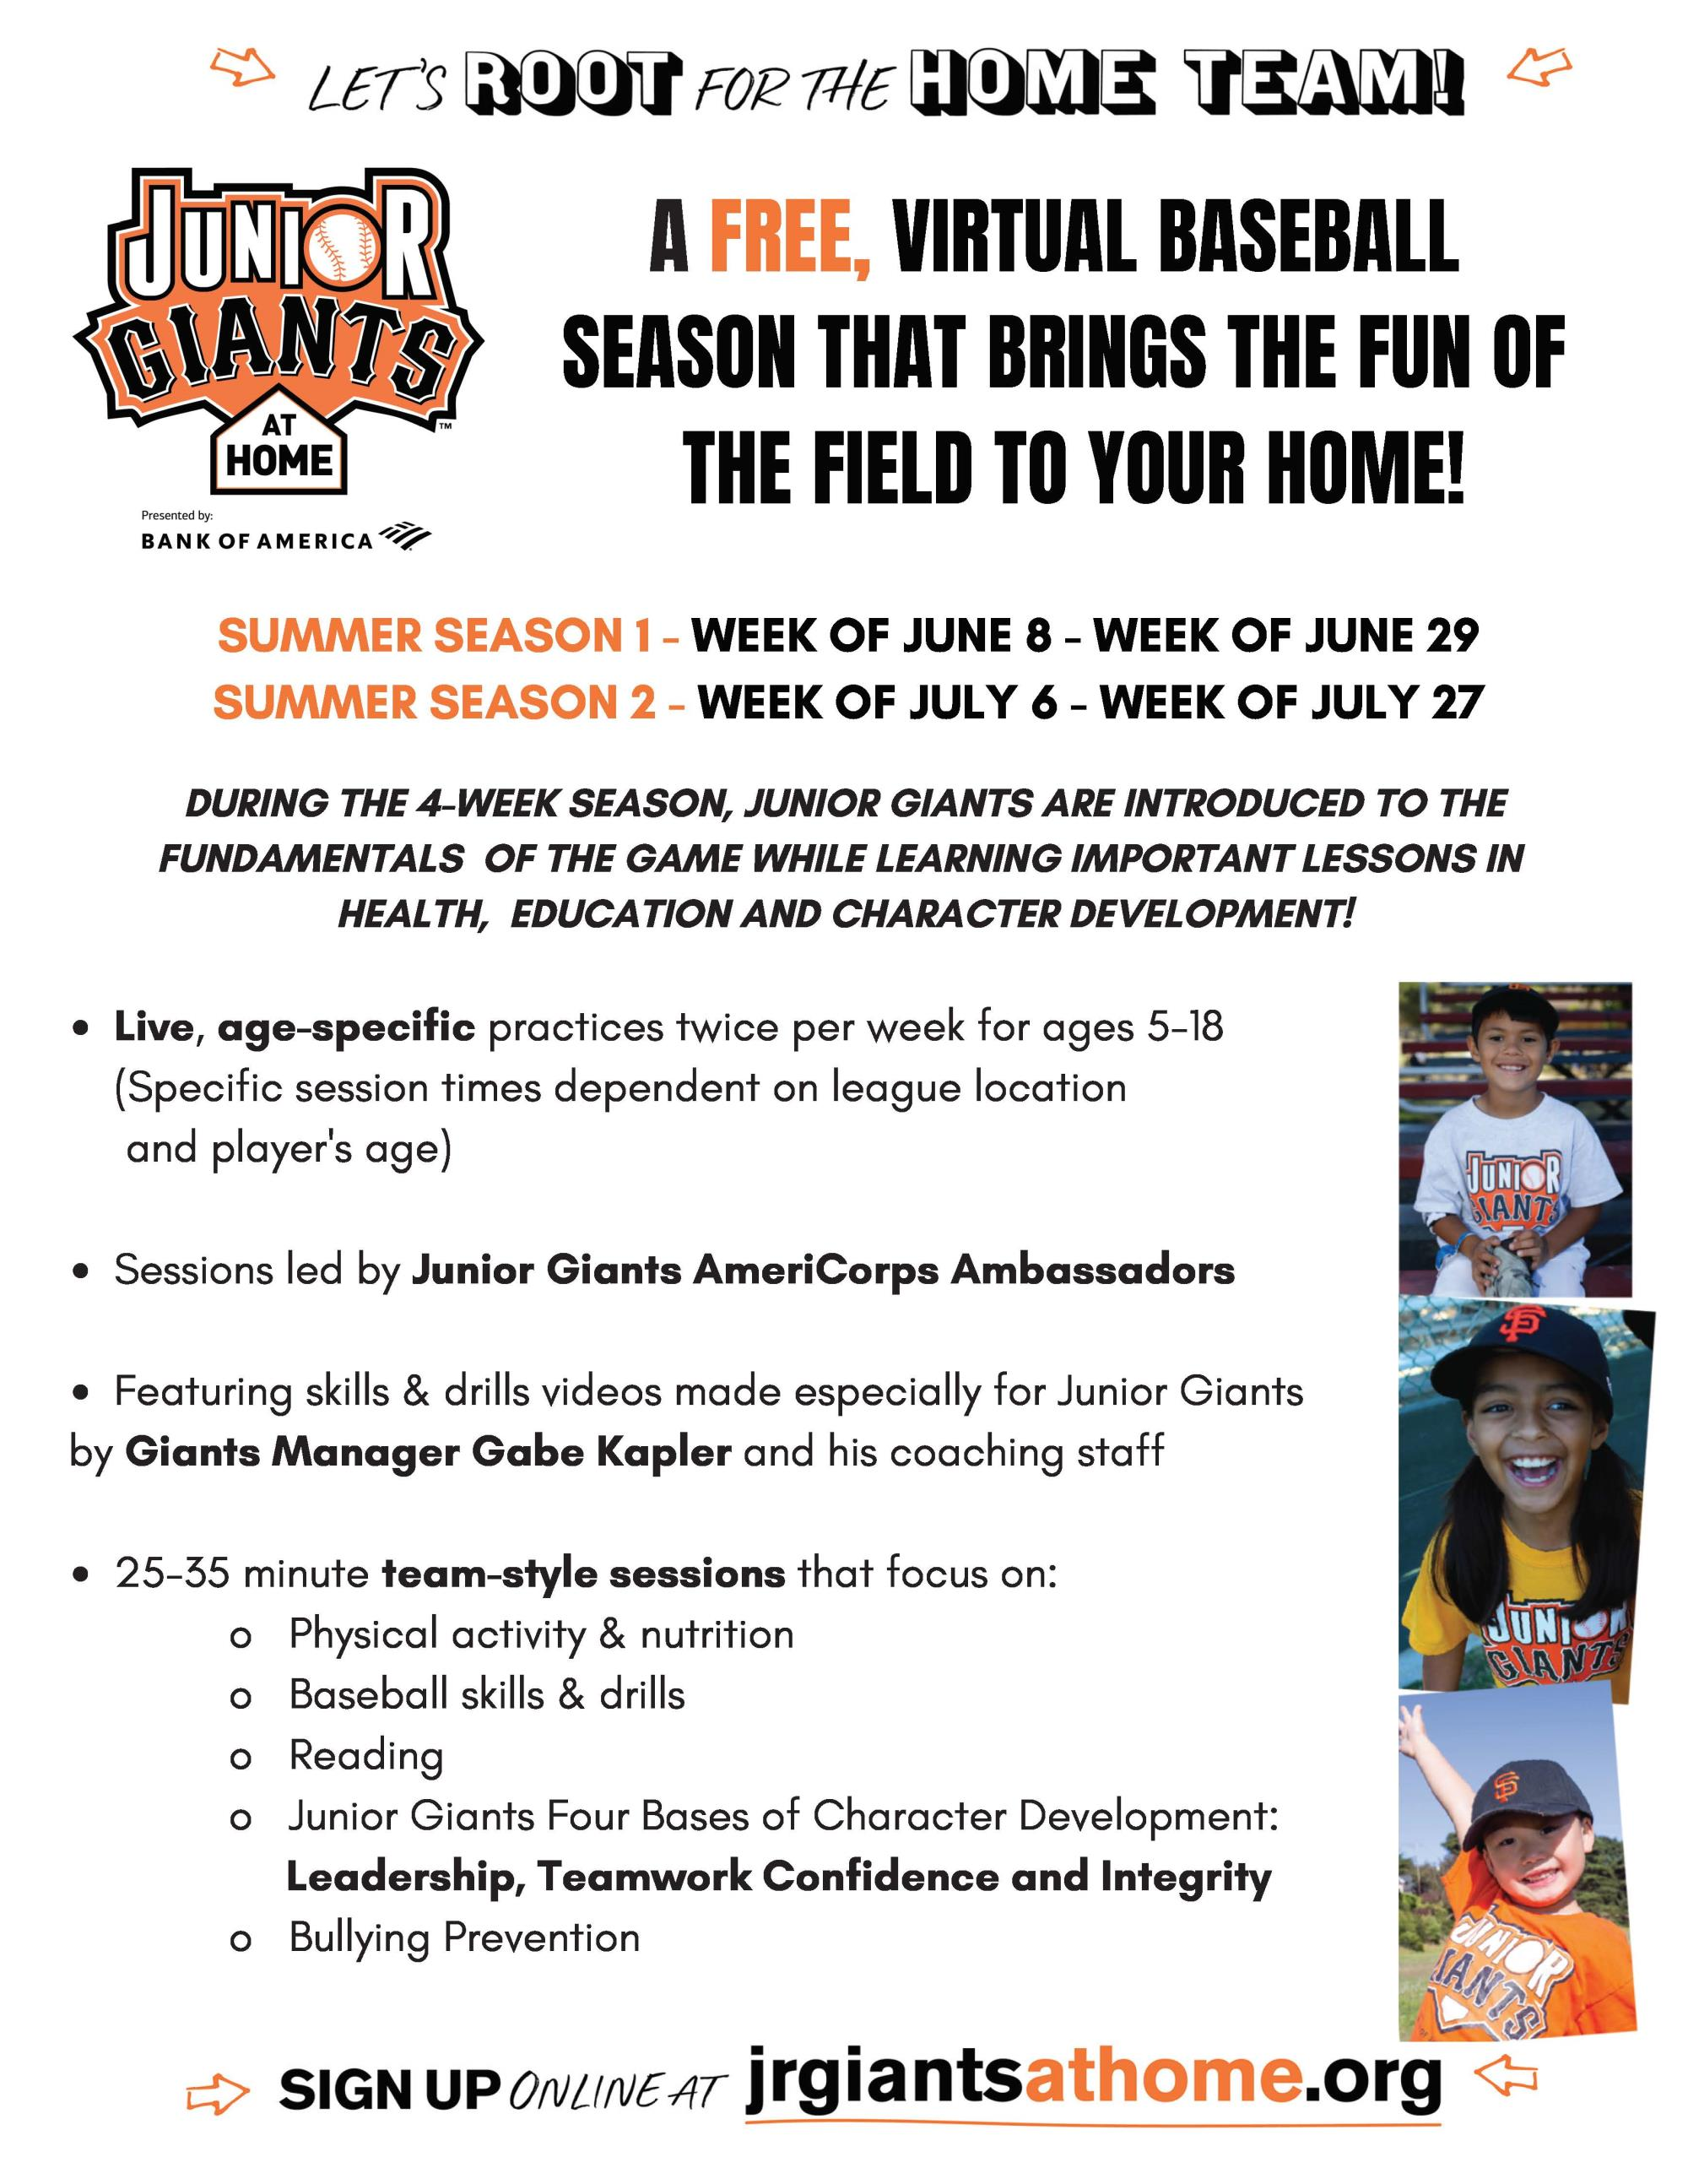 About Junior Giants at Home